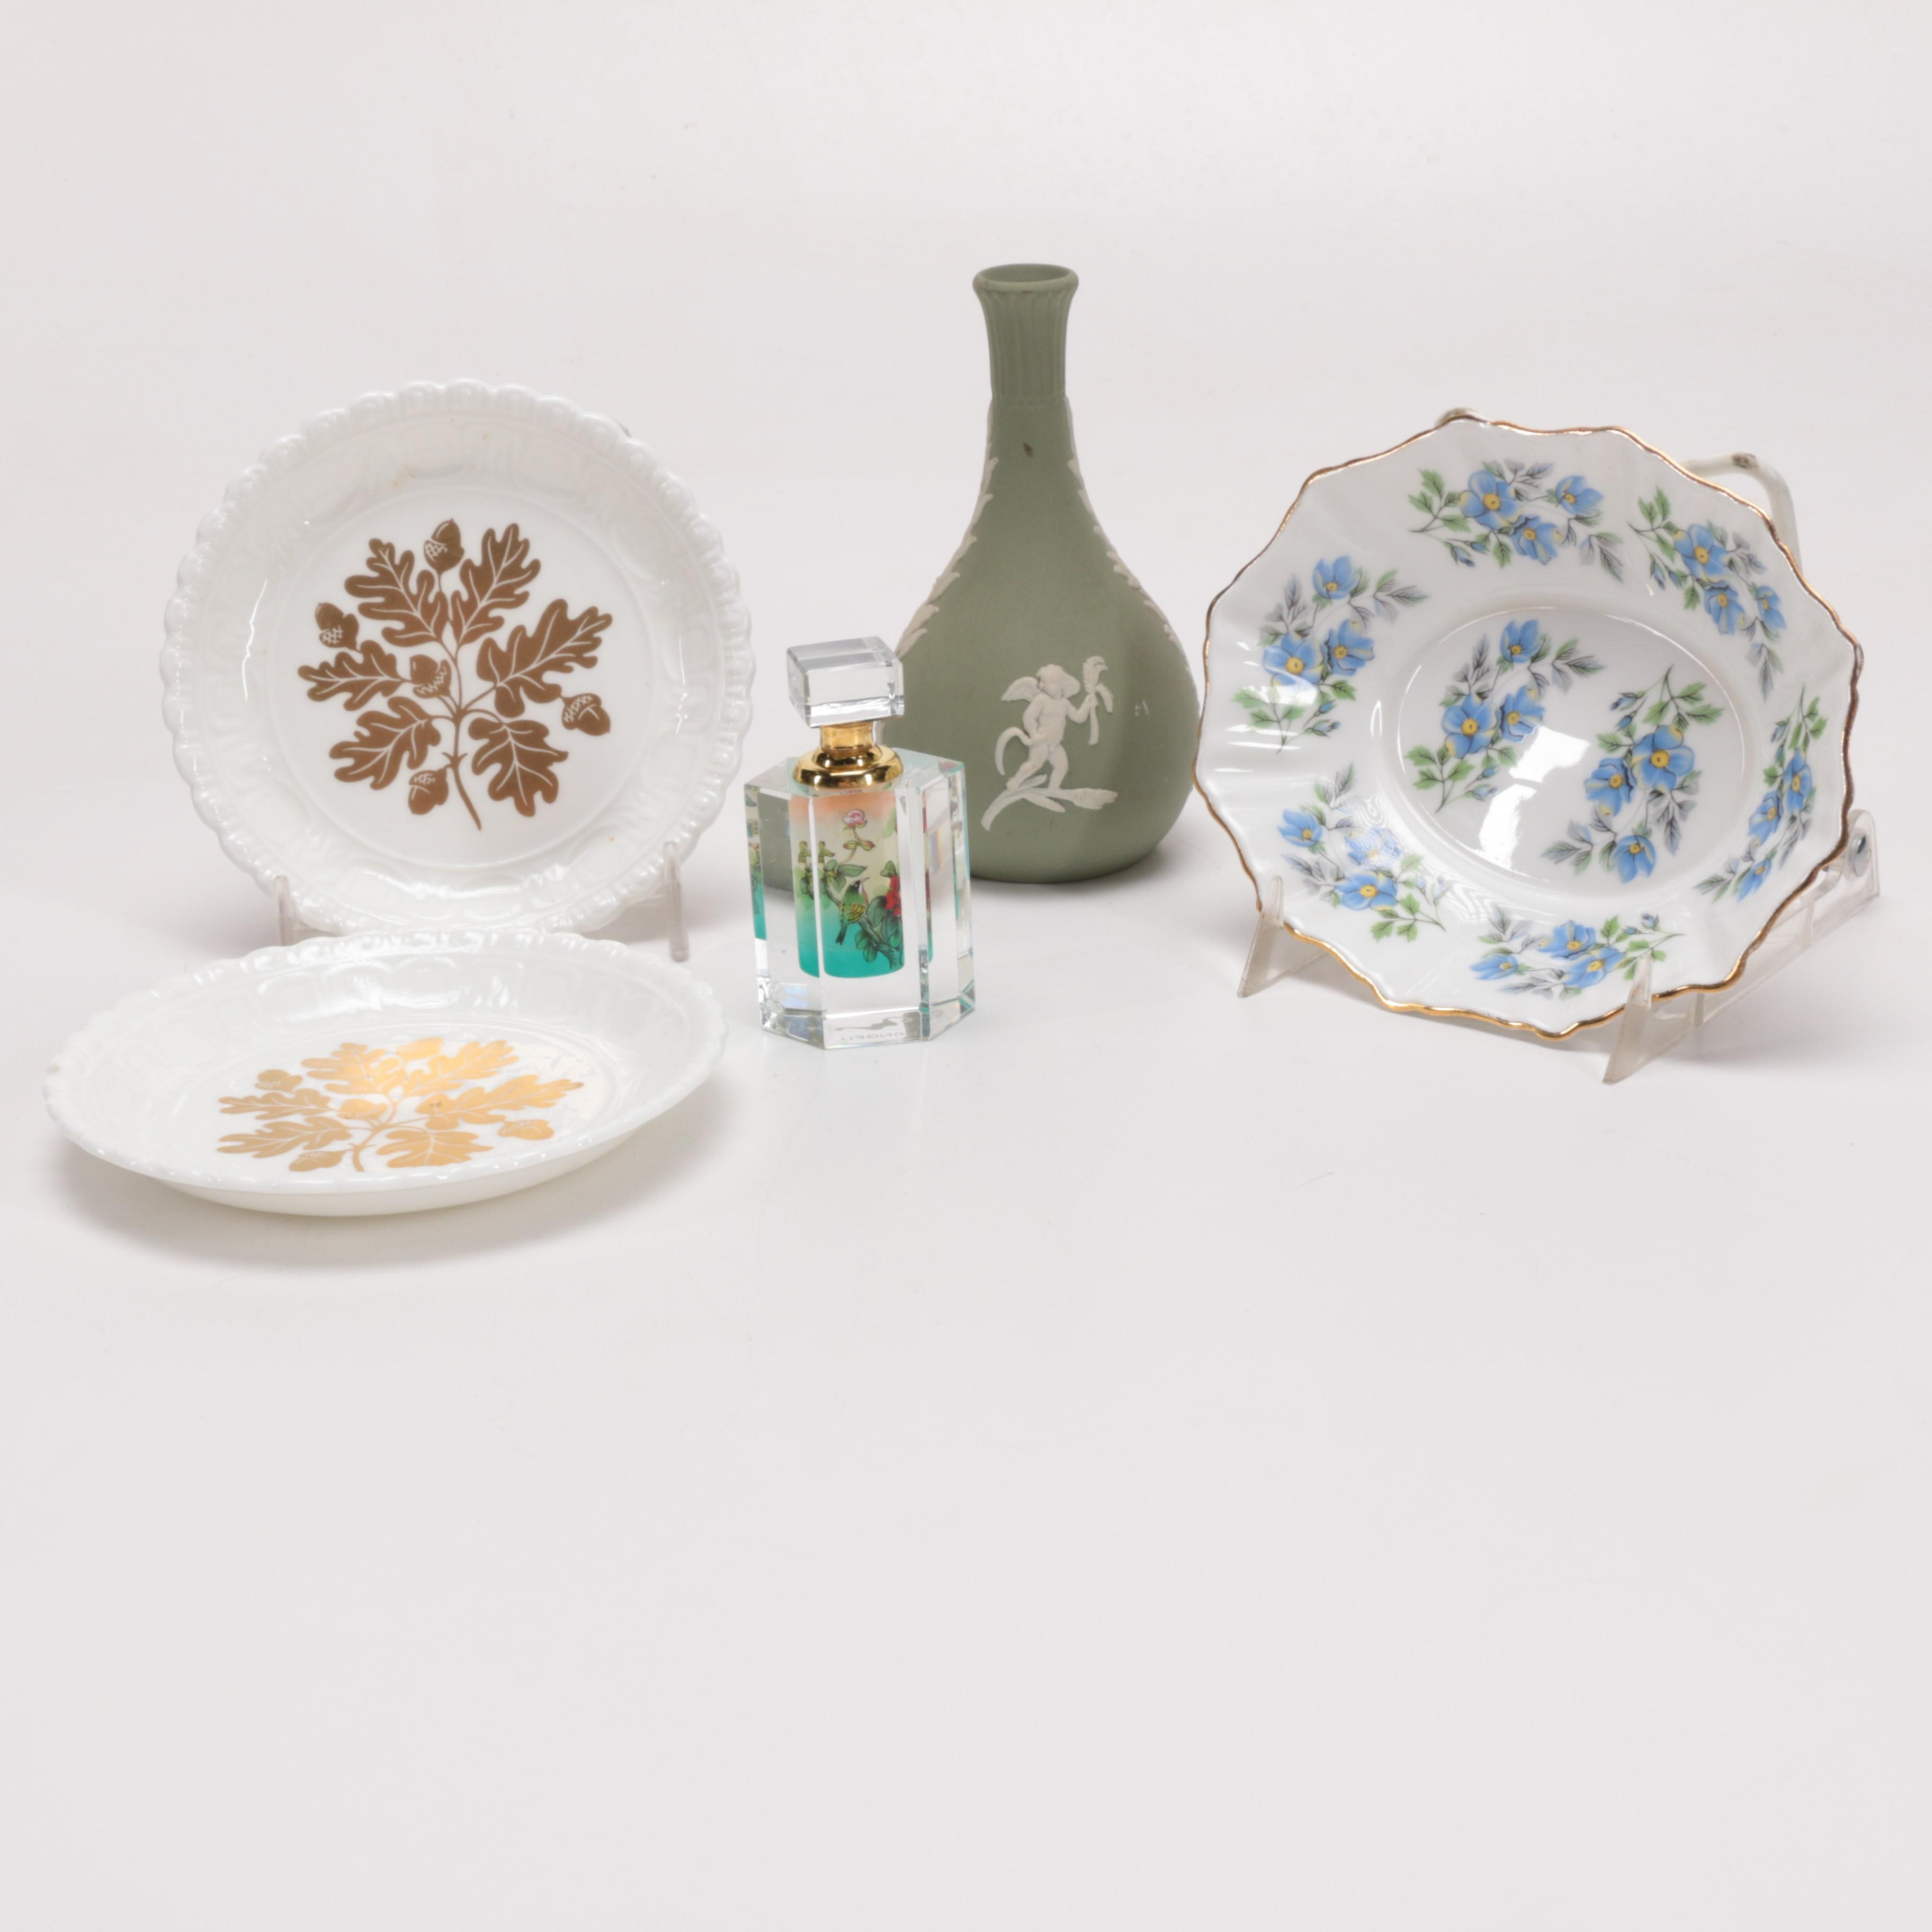 Collection of Home Decor Including Coalport and Wedgwood